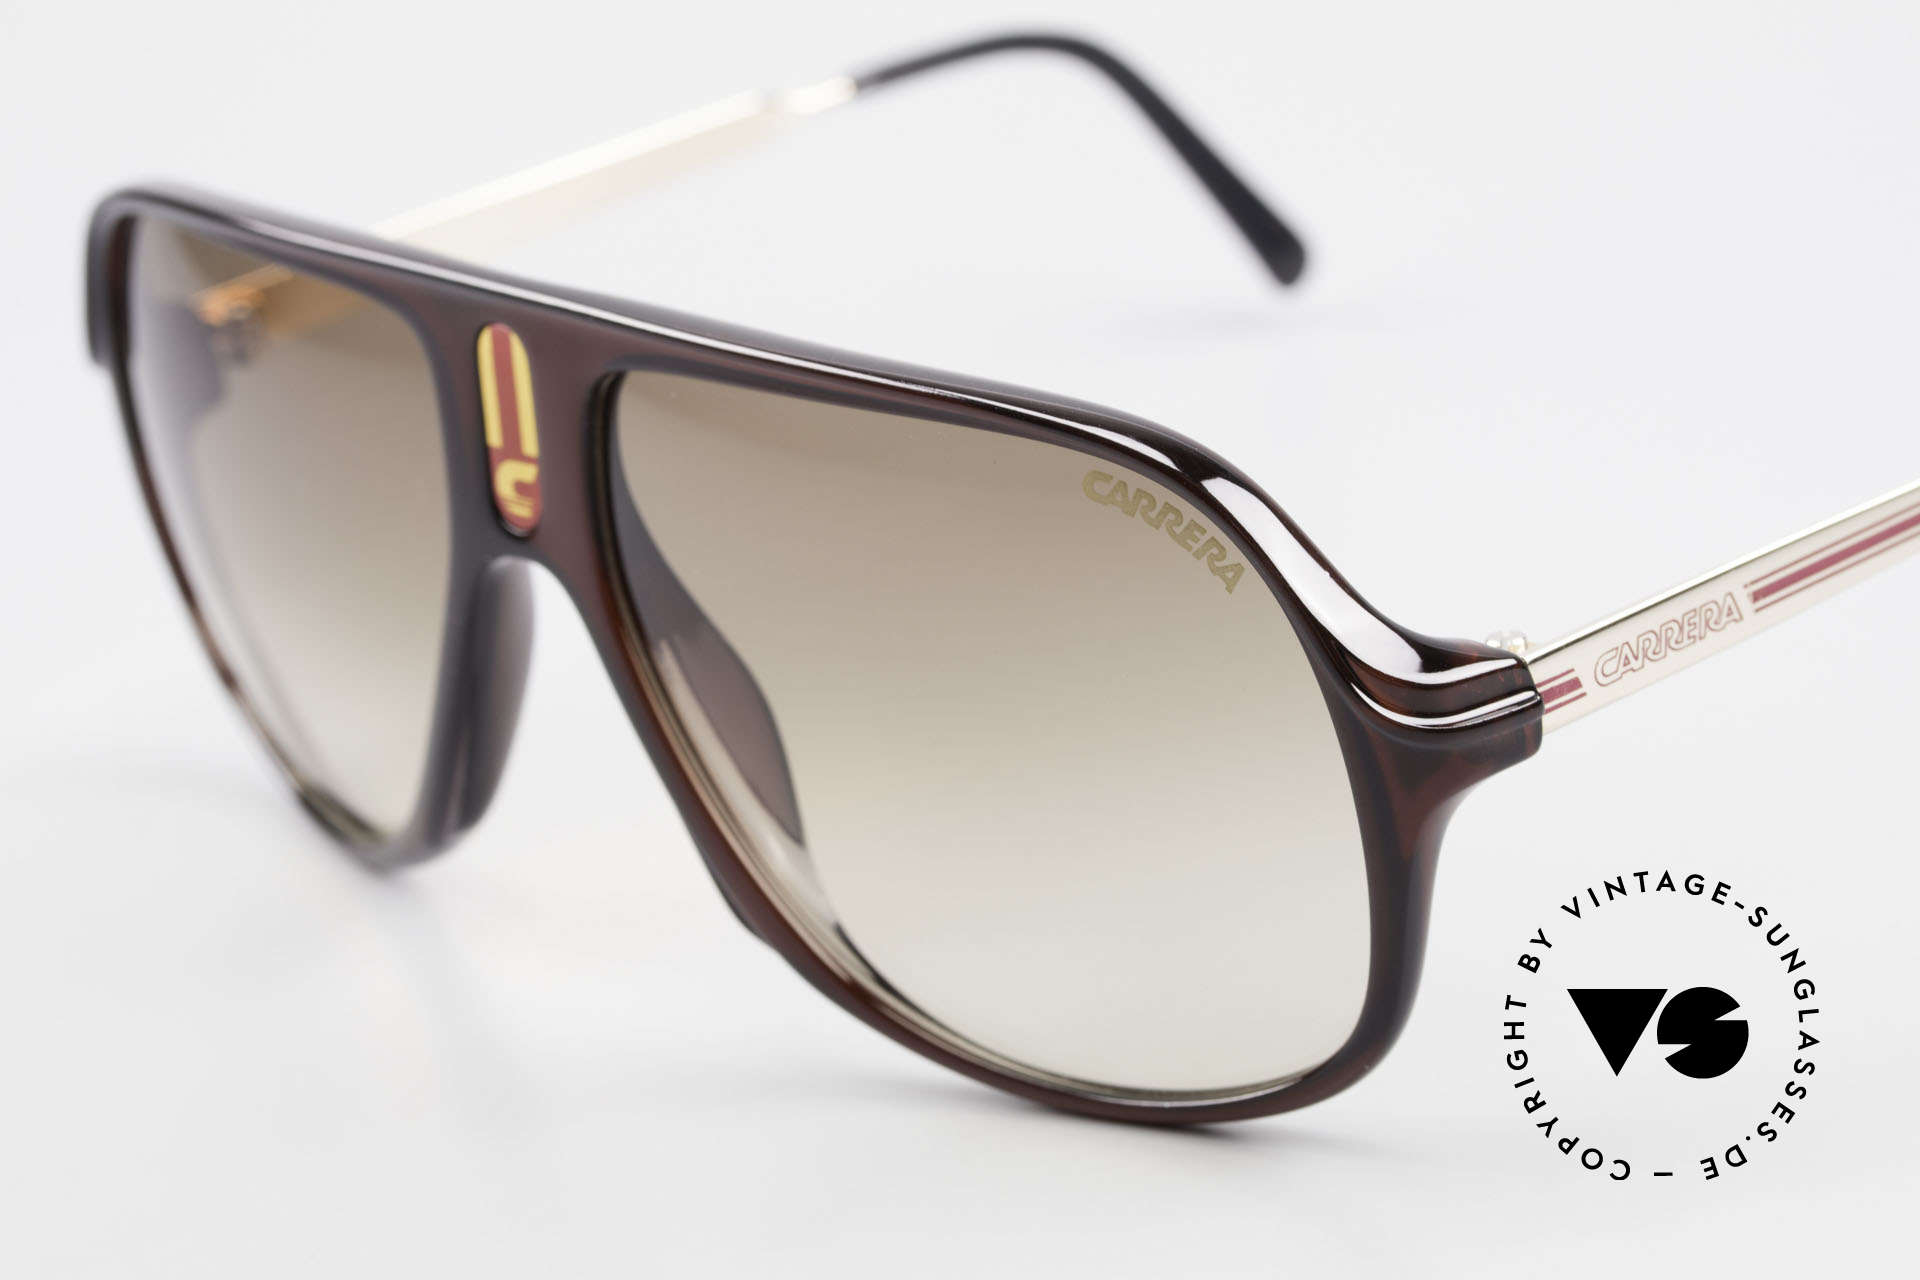 "Carrera 5547 80's Vintage Shades No Retro, orig. catalog name in the 80's was ""model 5547 Safari"", Made for Men"